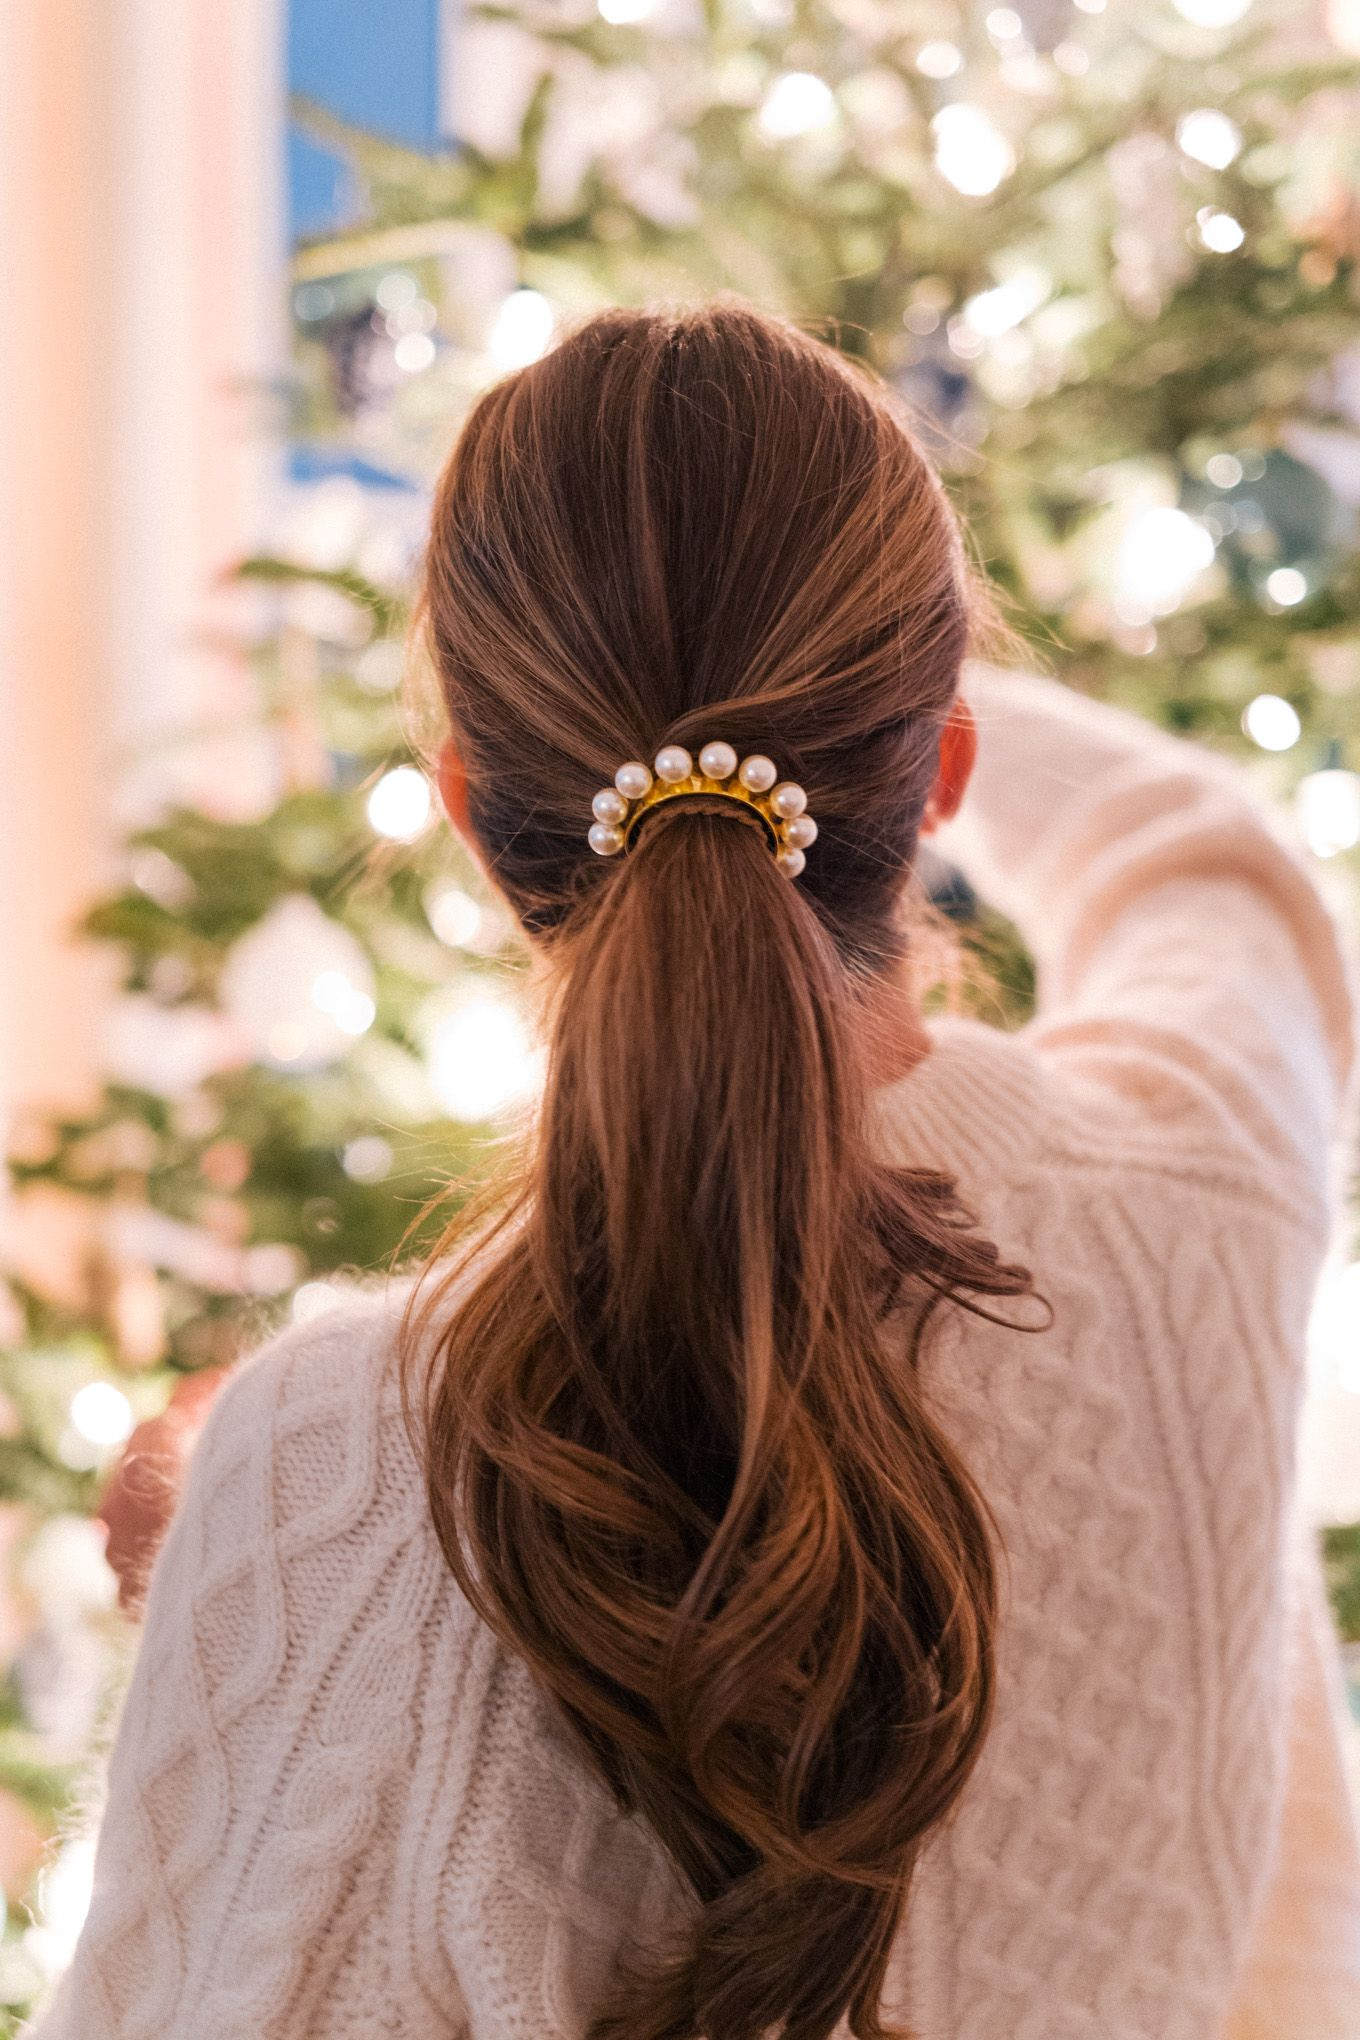 Holiday Pearl Details is part of Headband hairstyles, Hair scarf styles, Hair beauty, Scarf hairstyles, Hair inspiration, Hair styles - This simple yet understated details adds a touch of elegance to every look! Here's how I style a favorite holiday party outfit of mine!